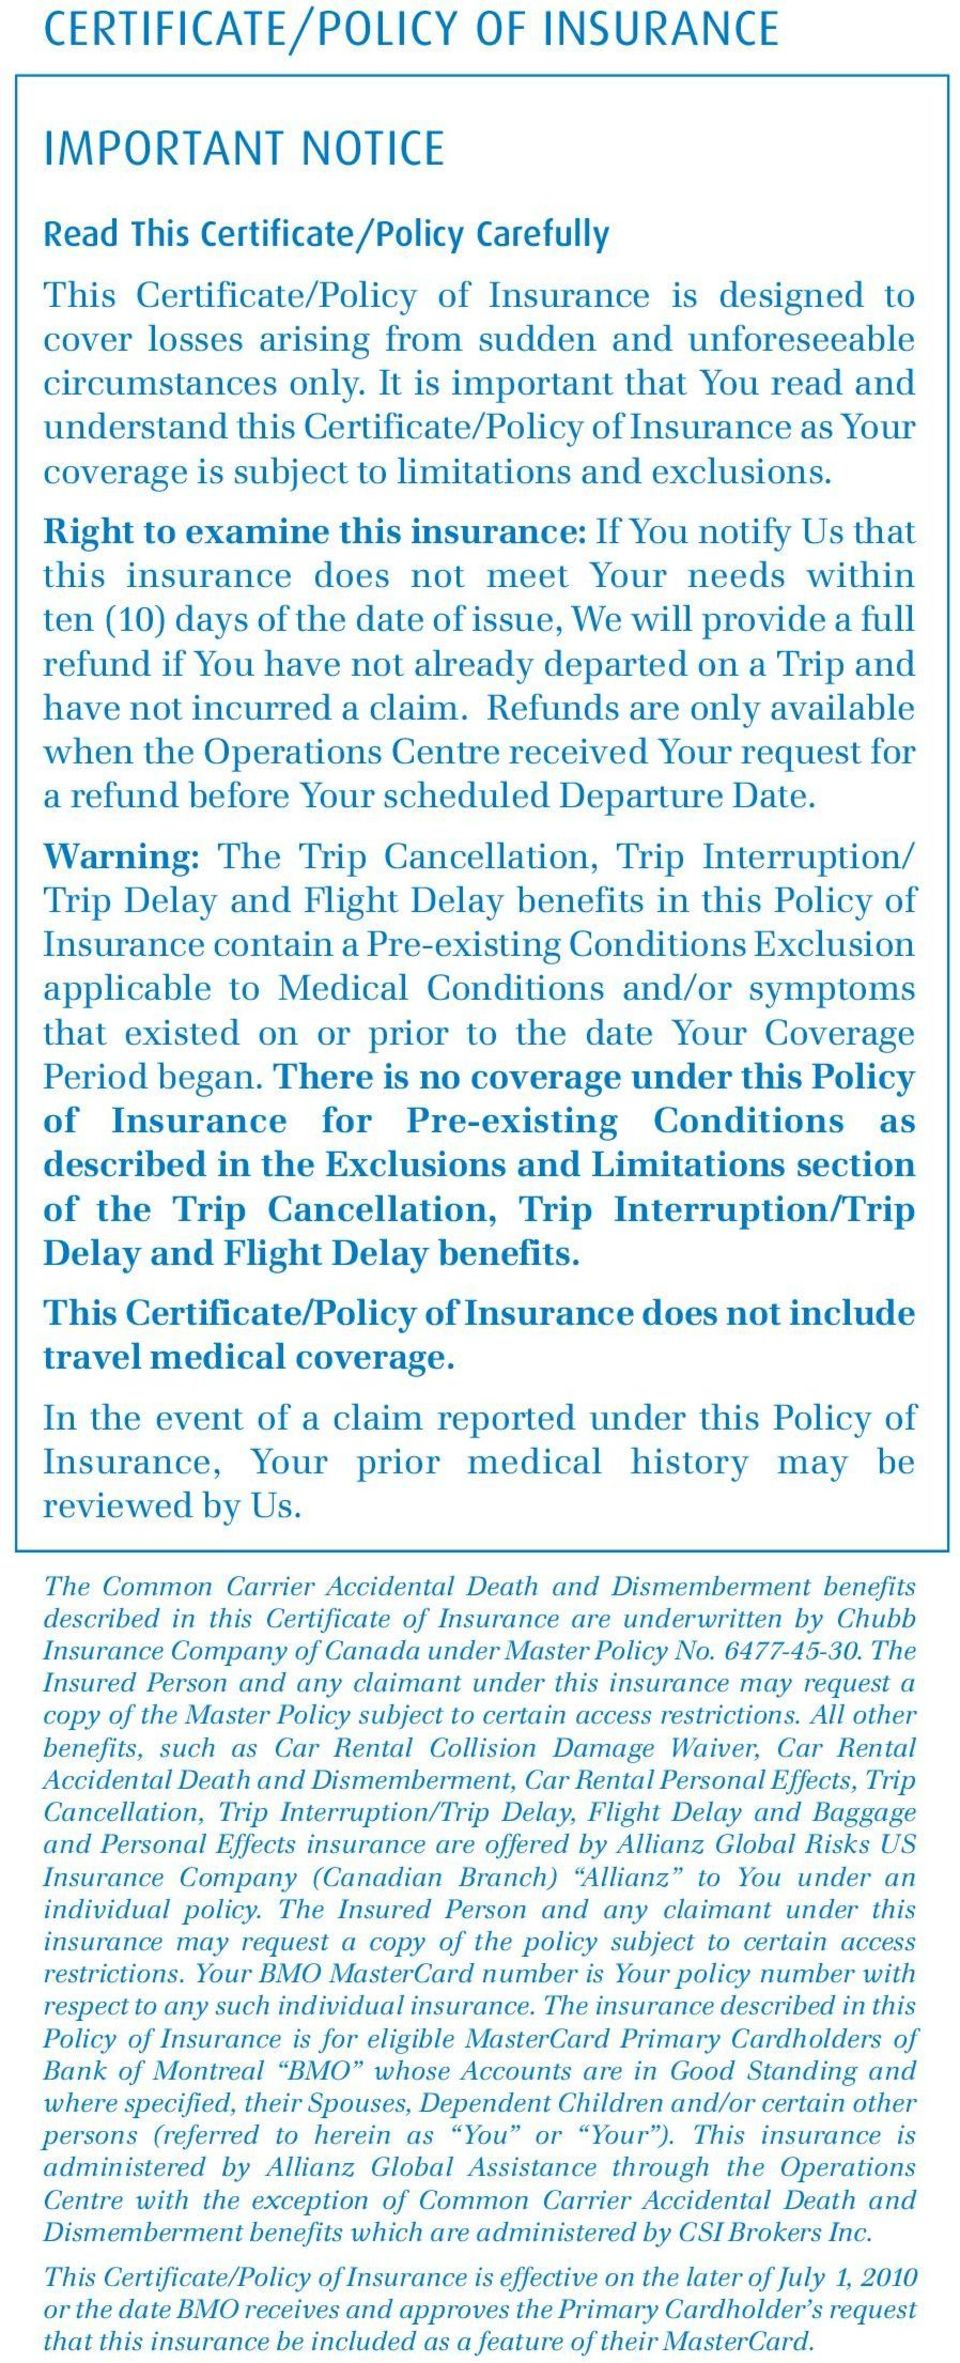 Right to examine this insurance: If You notify Us that this insurance does not meet Your needs within ten (10) days of the date of issue, We will provide a full refund if You have not already